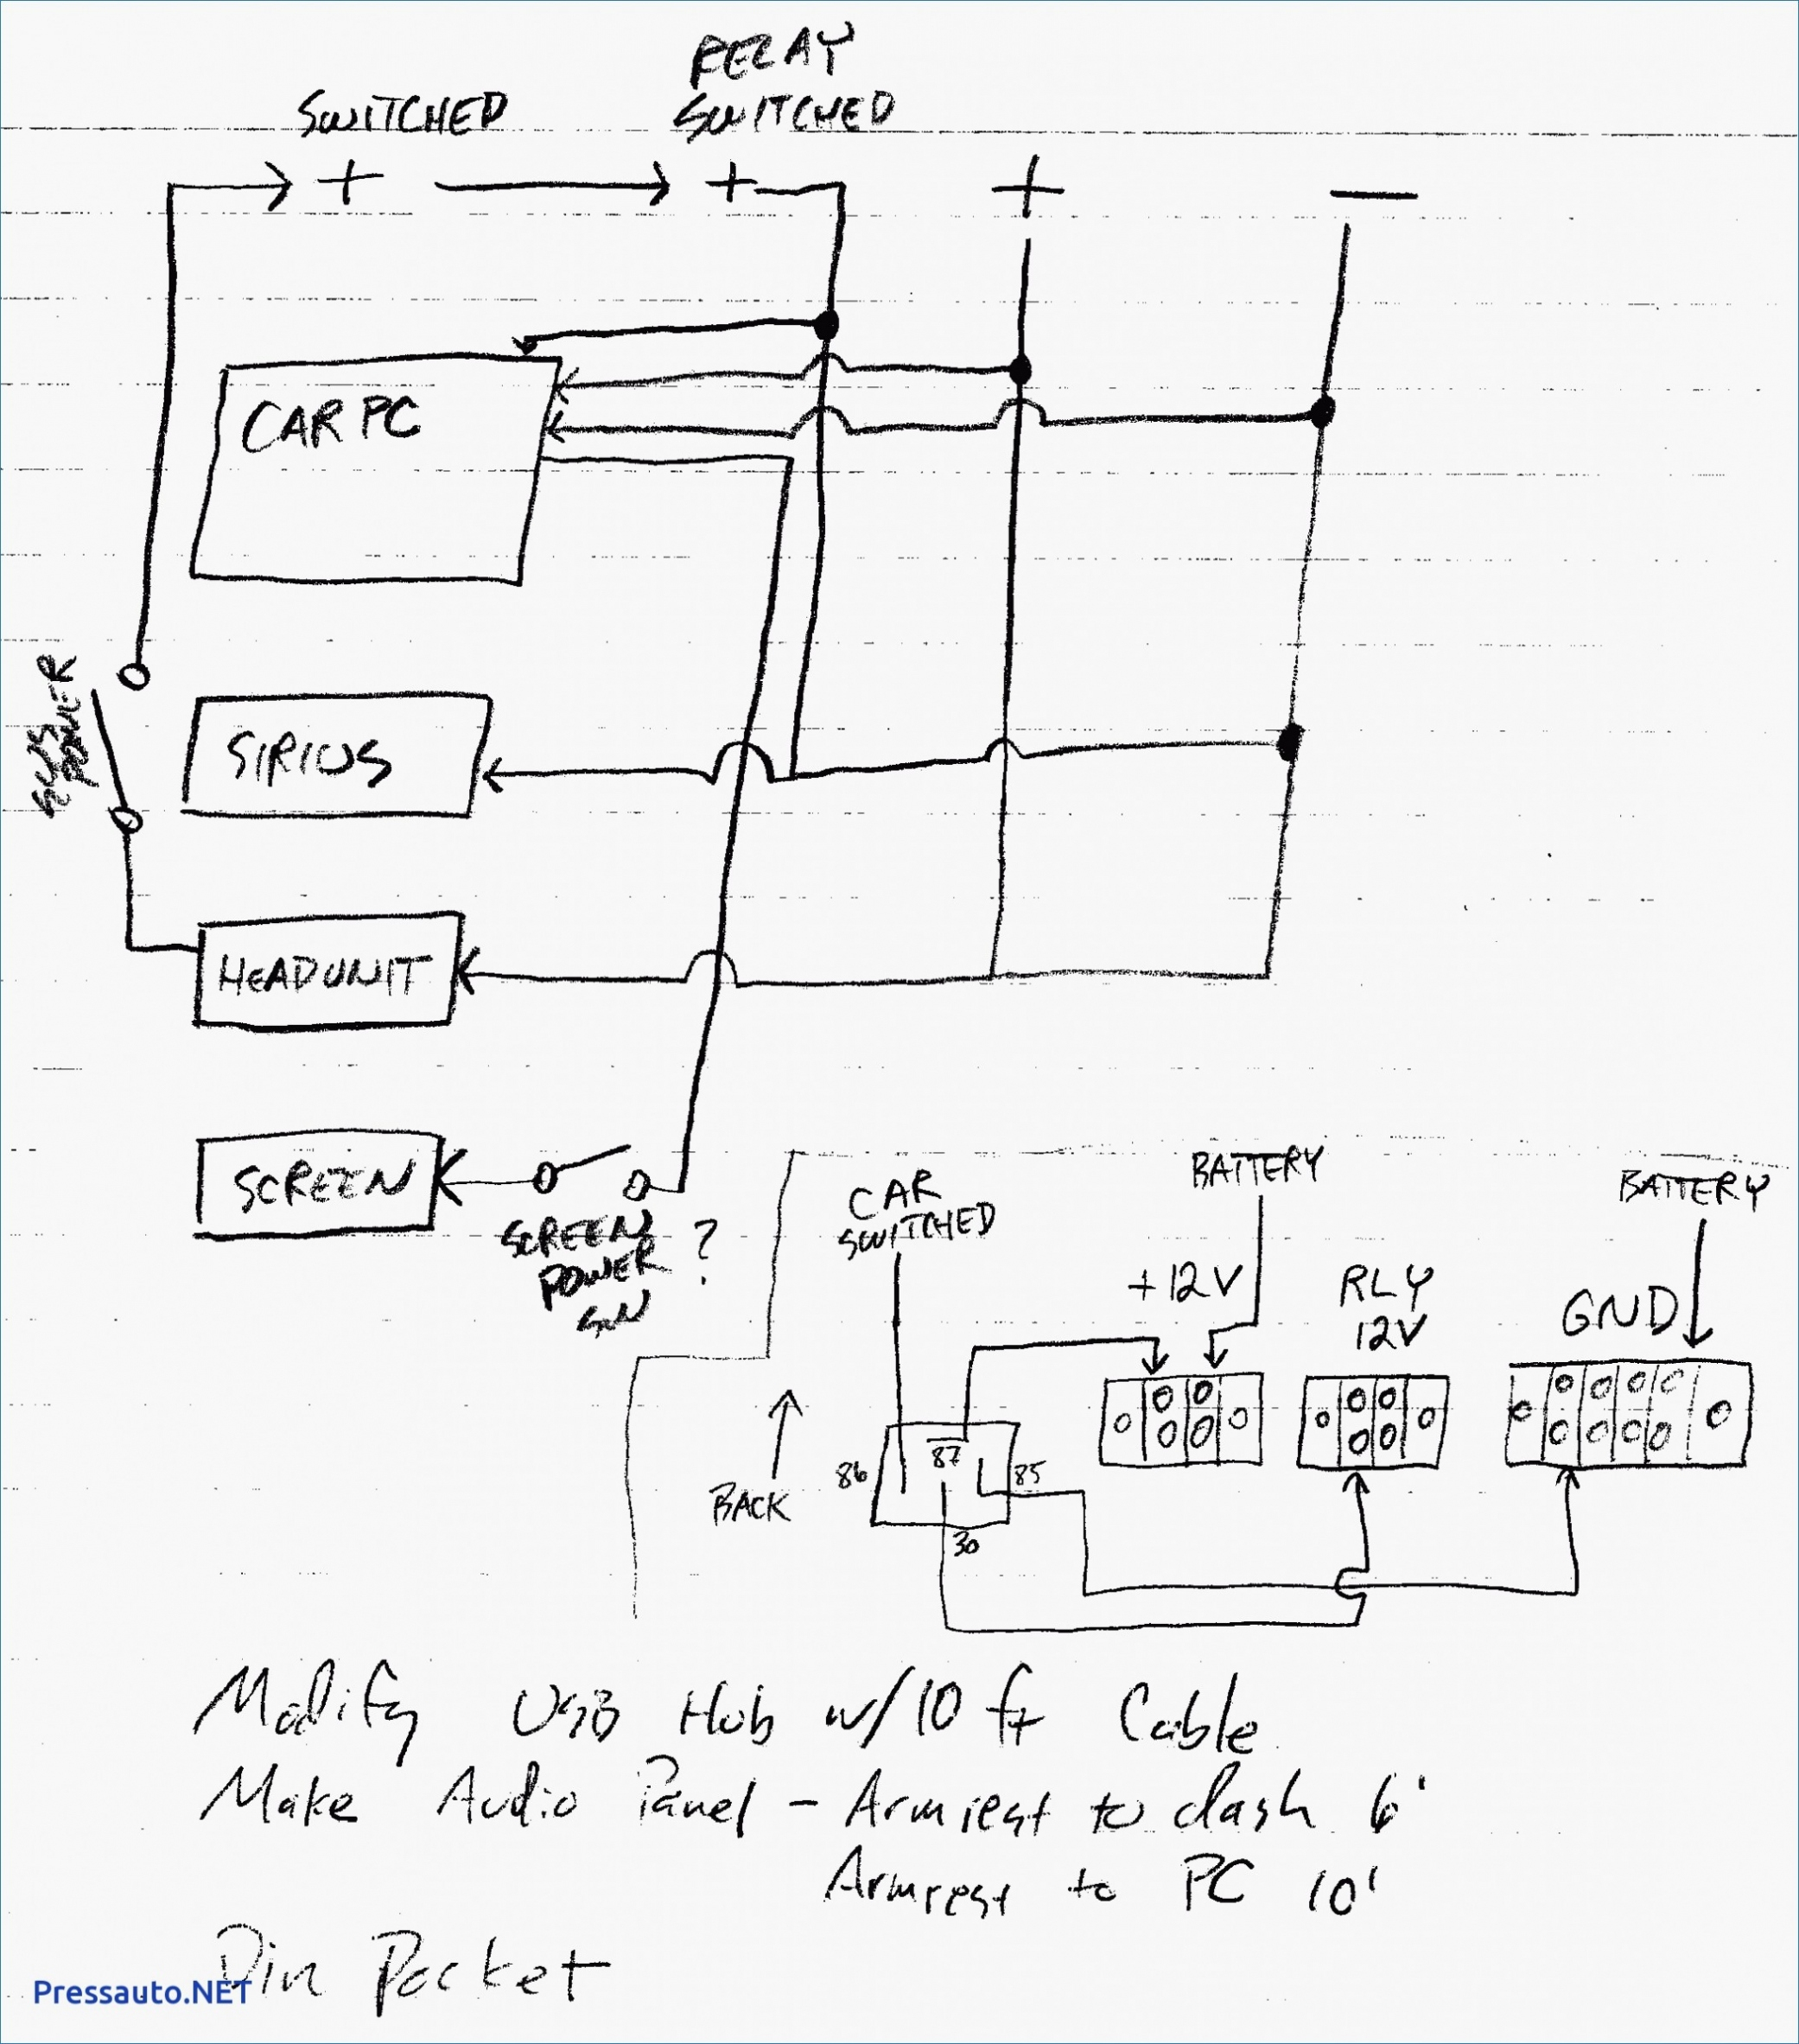 Wiring Diagram Meyers | Manual E-Books - Meyers Snow Plow Wiring Diagram E47